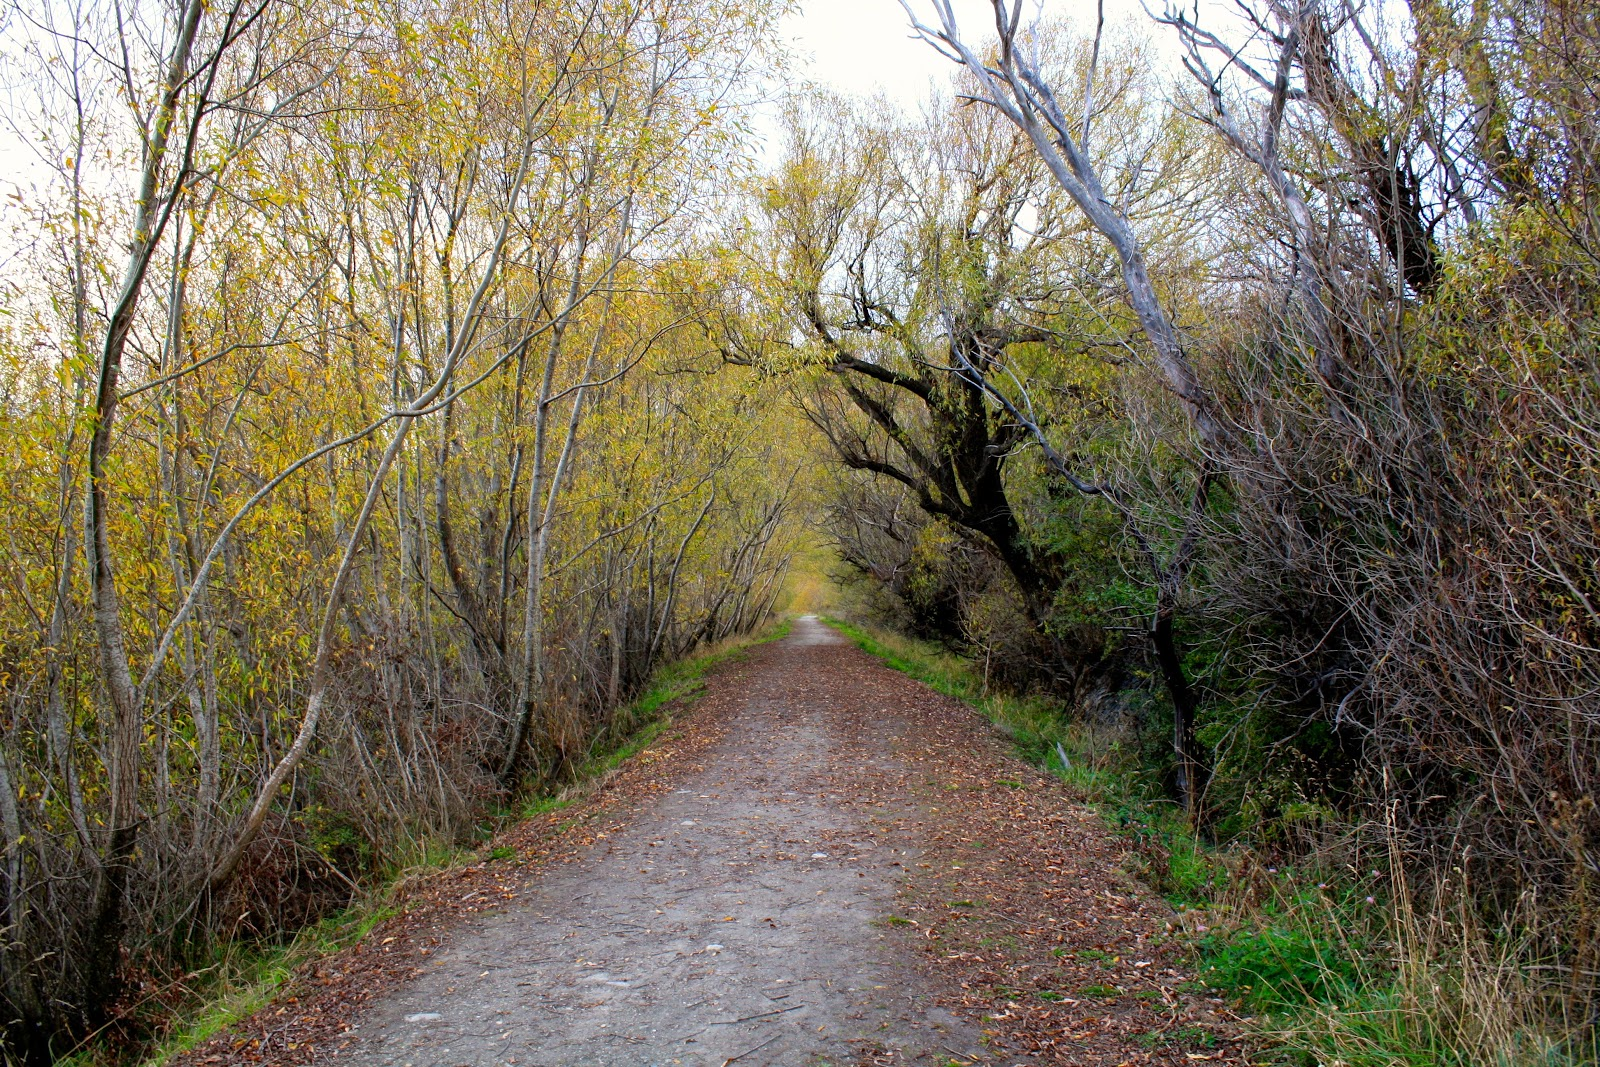 A path leading away into the distance, lined with orange trees.